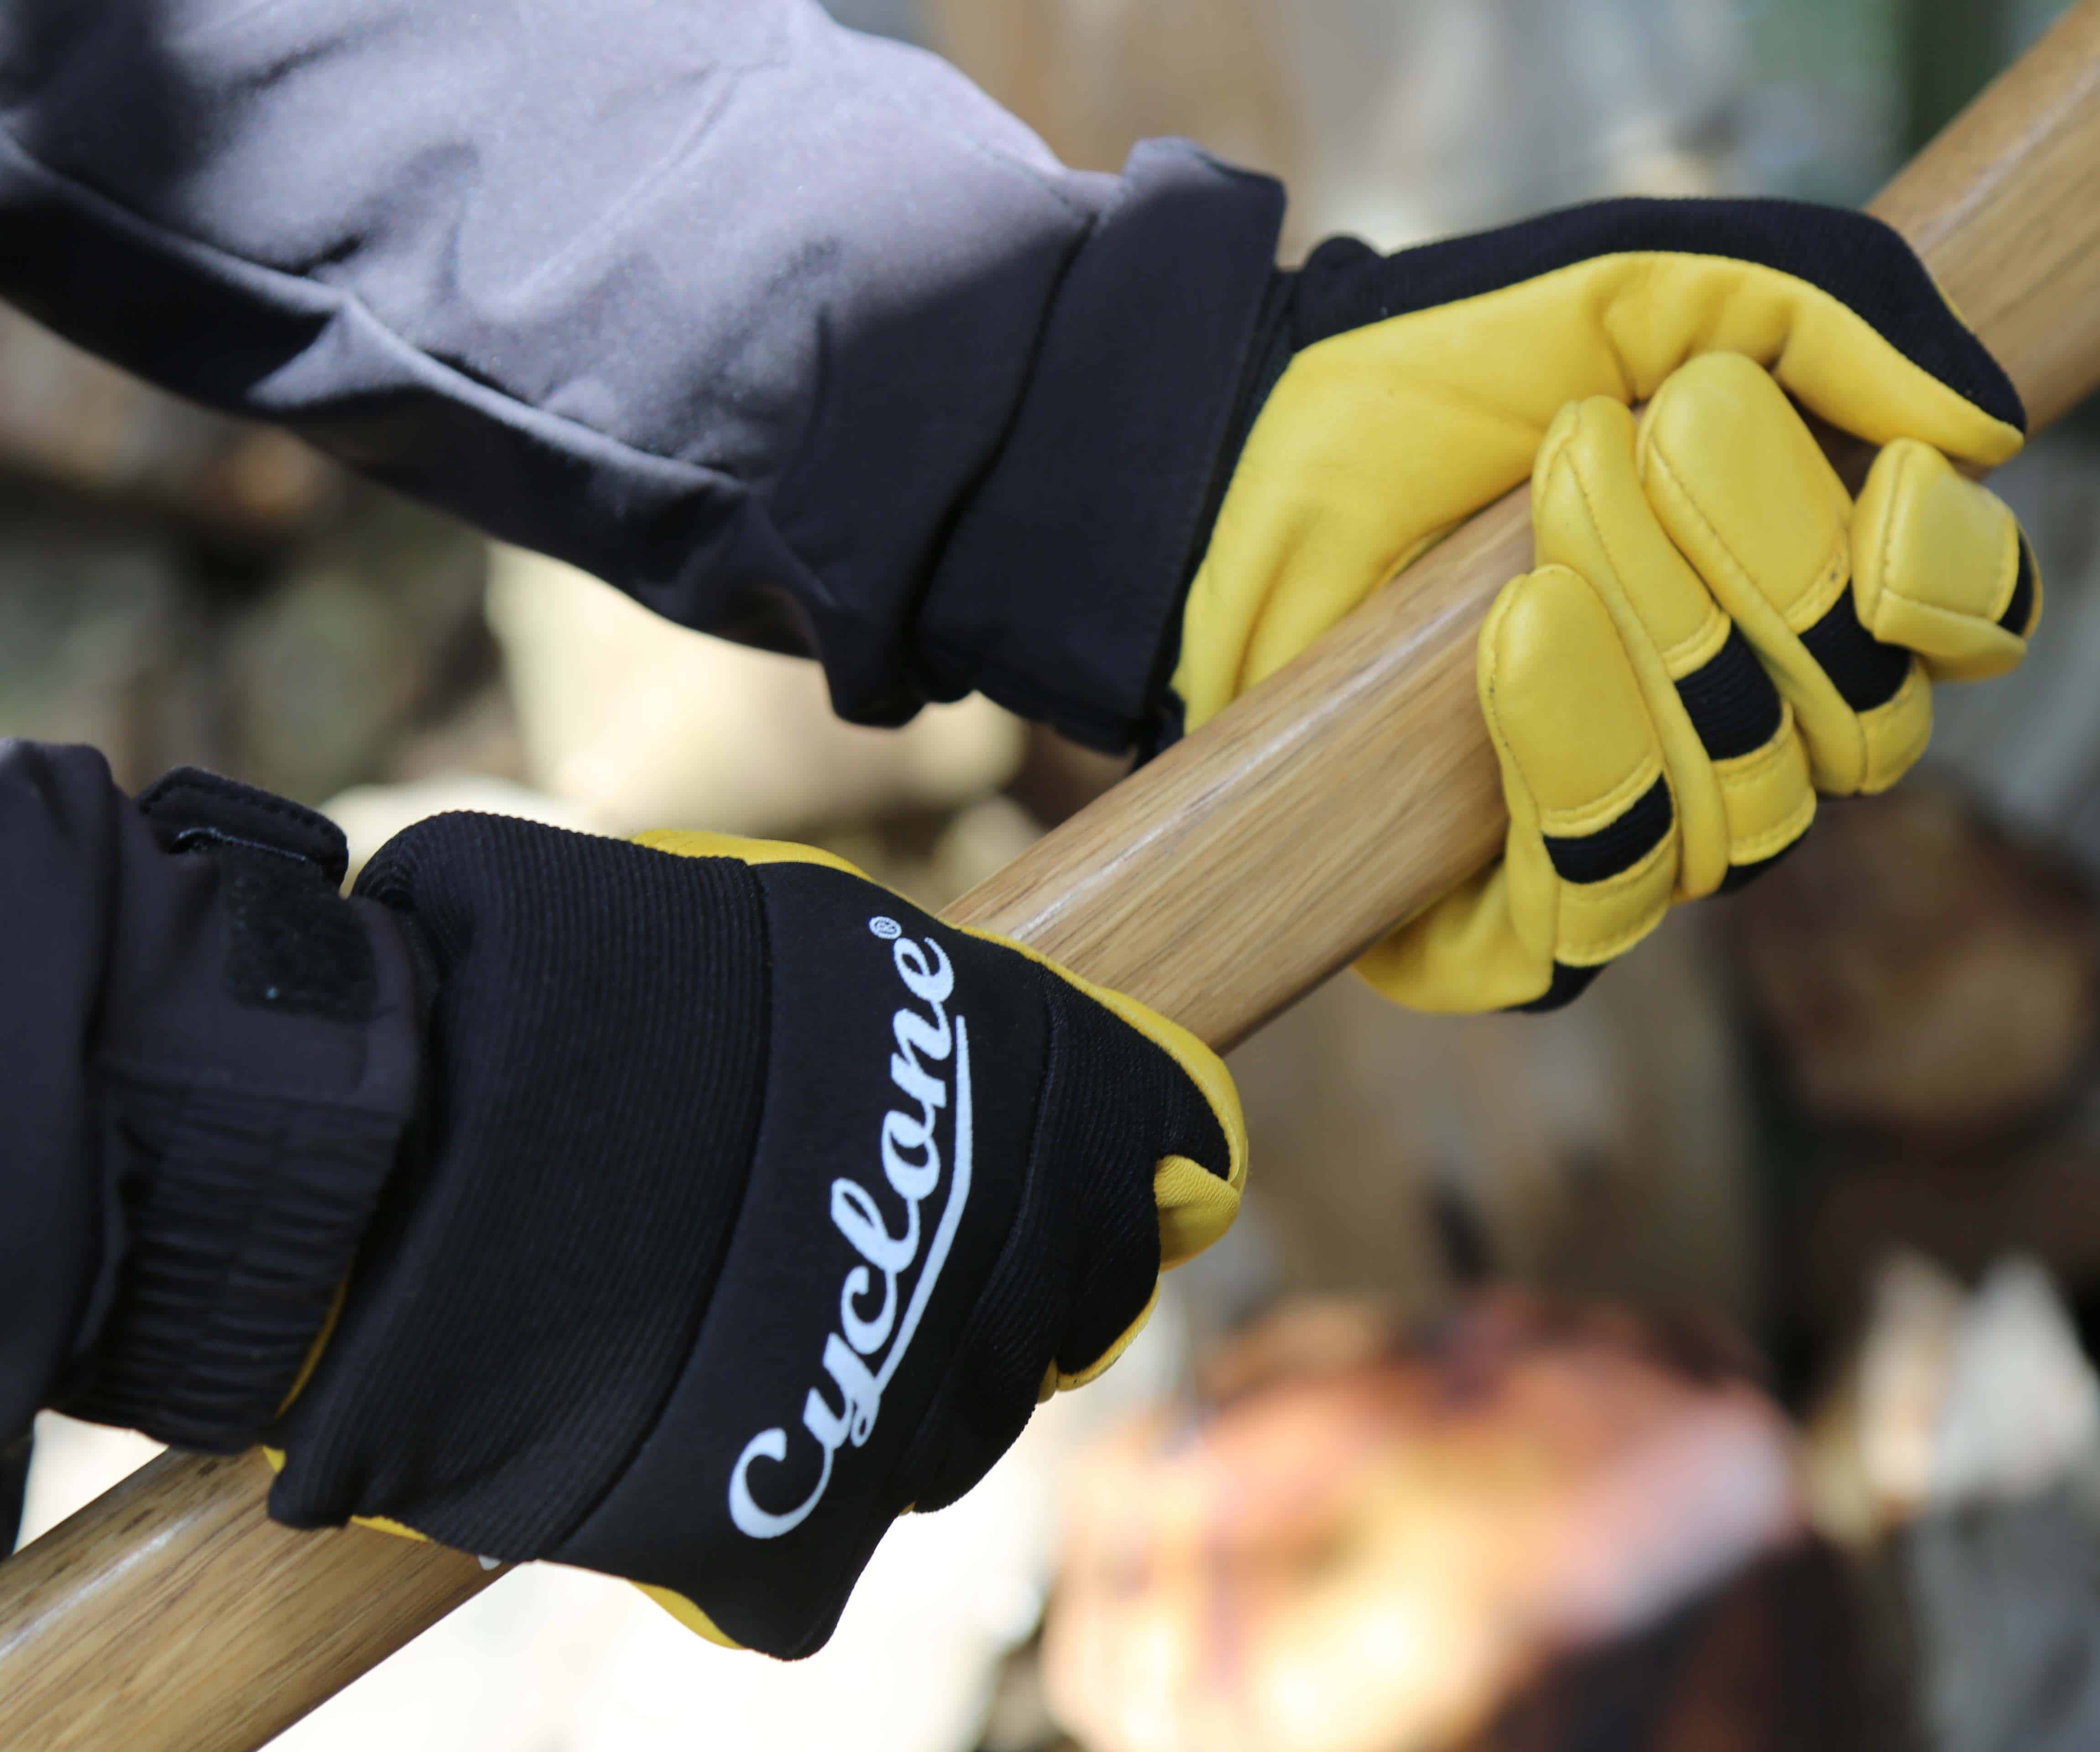 CYCLONE GARDENING GLOVES